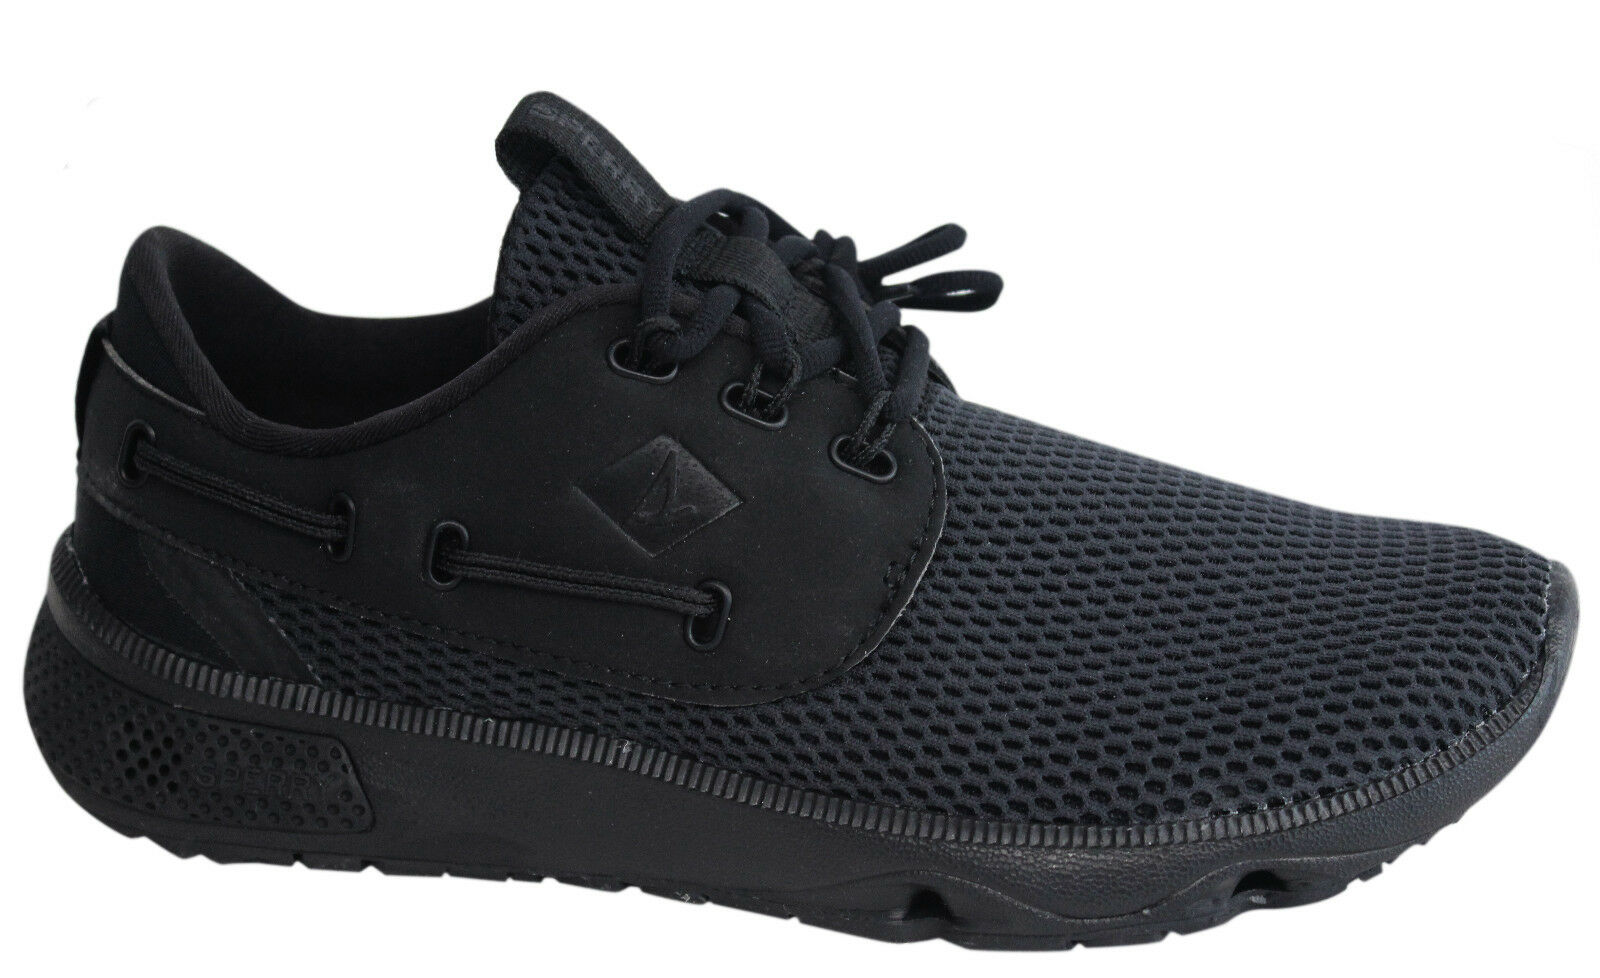 Sperry 7 Seas Lace Up Black Mesh Textile Mens Trainers STS15532 U16